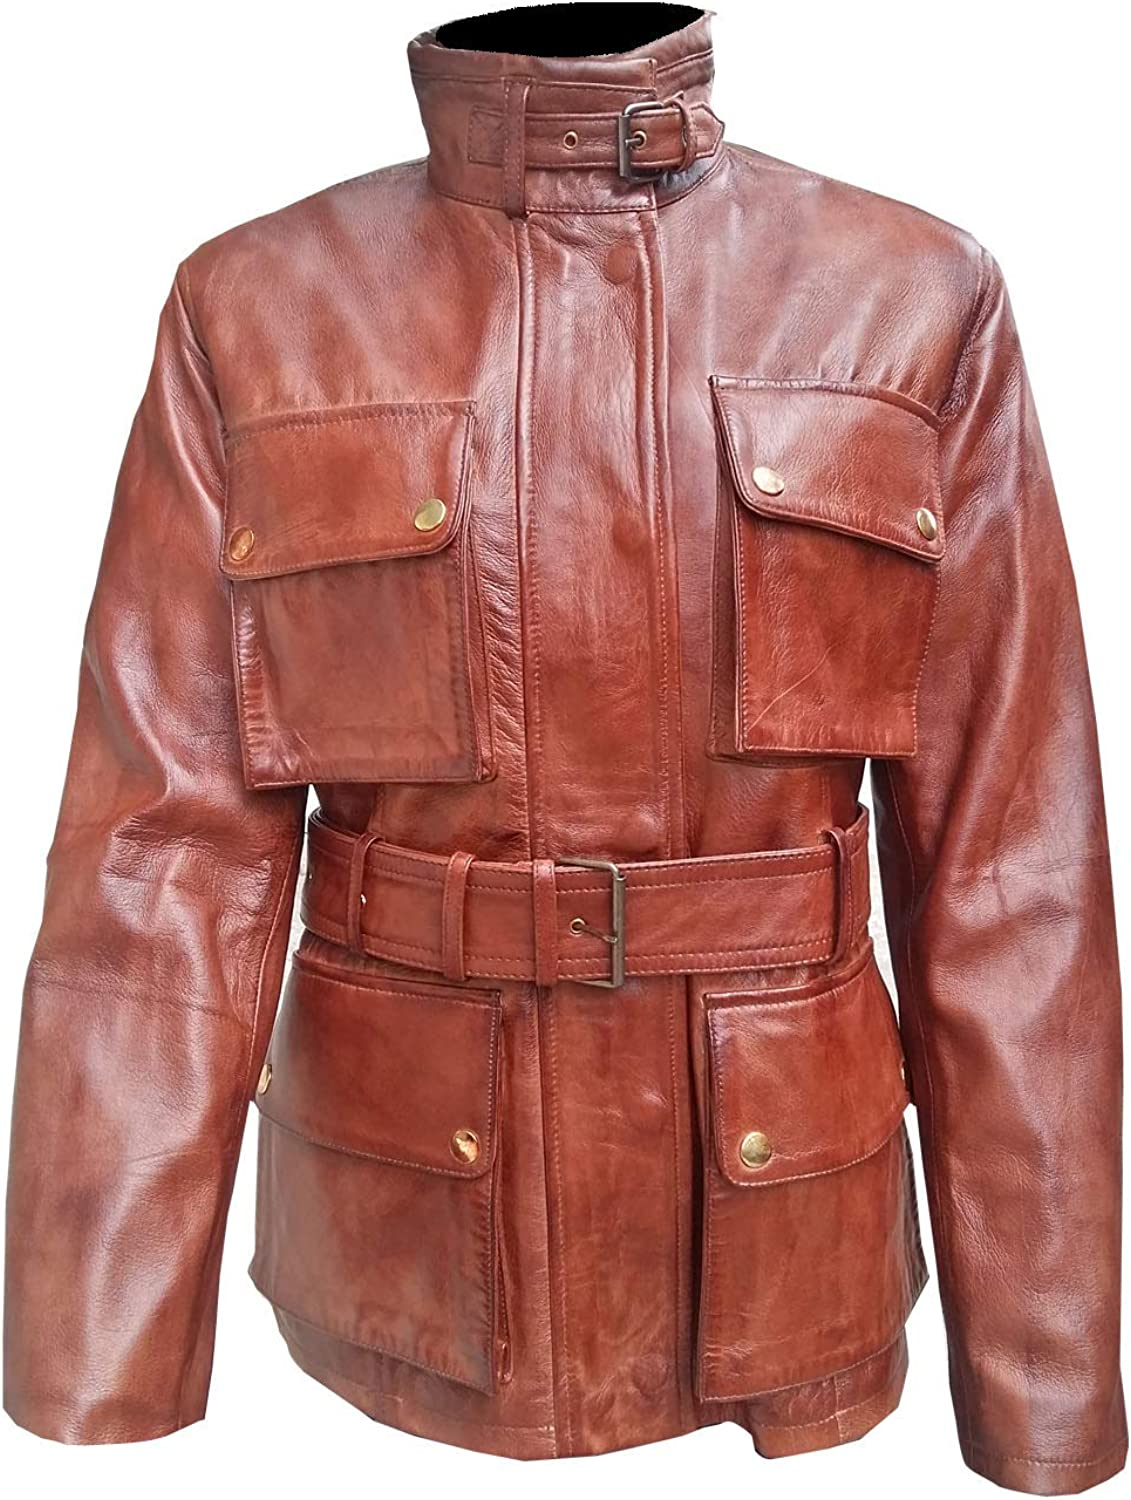 Marche Women's Safari Trucker Vintage Distressed Brown Leather Jacket 2XS to 3XL